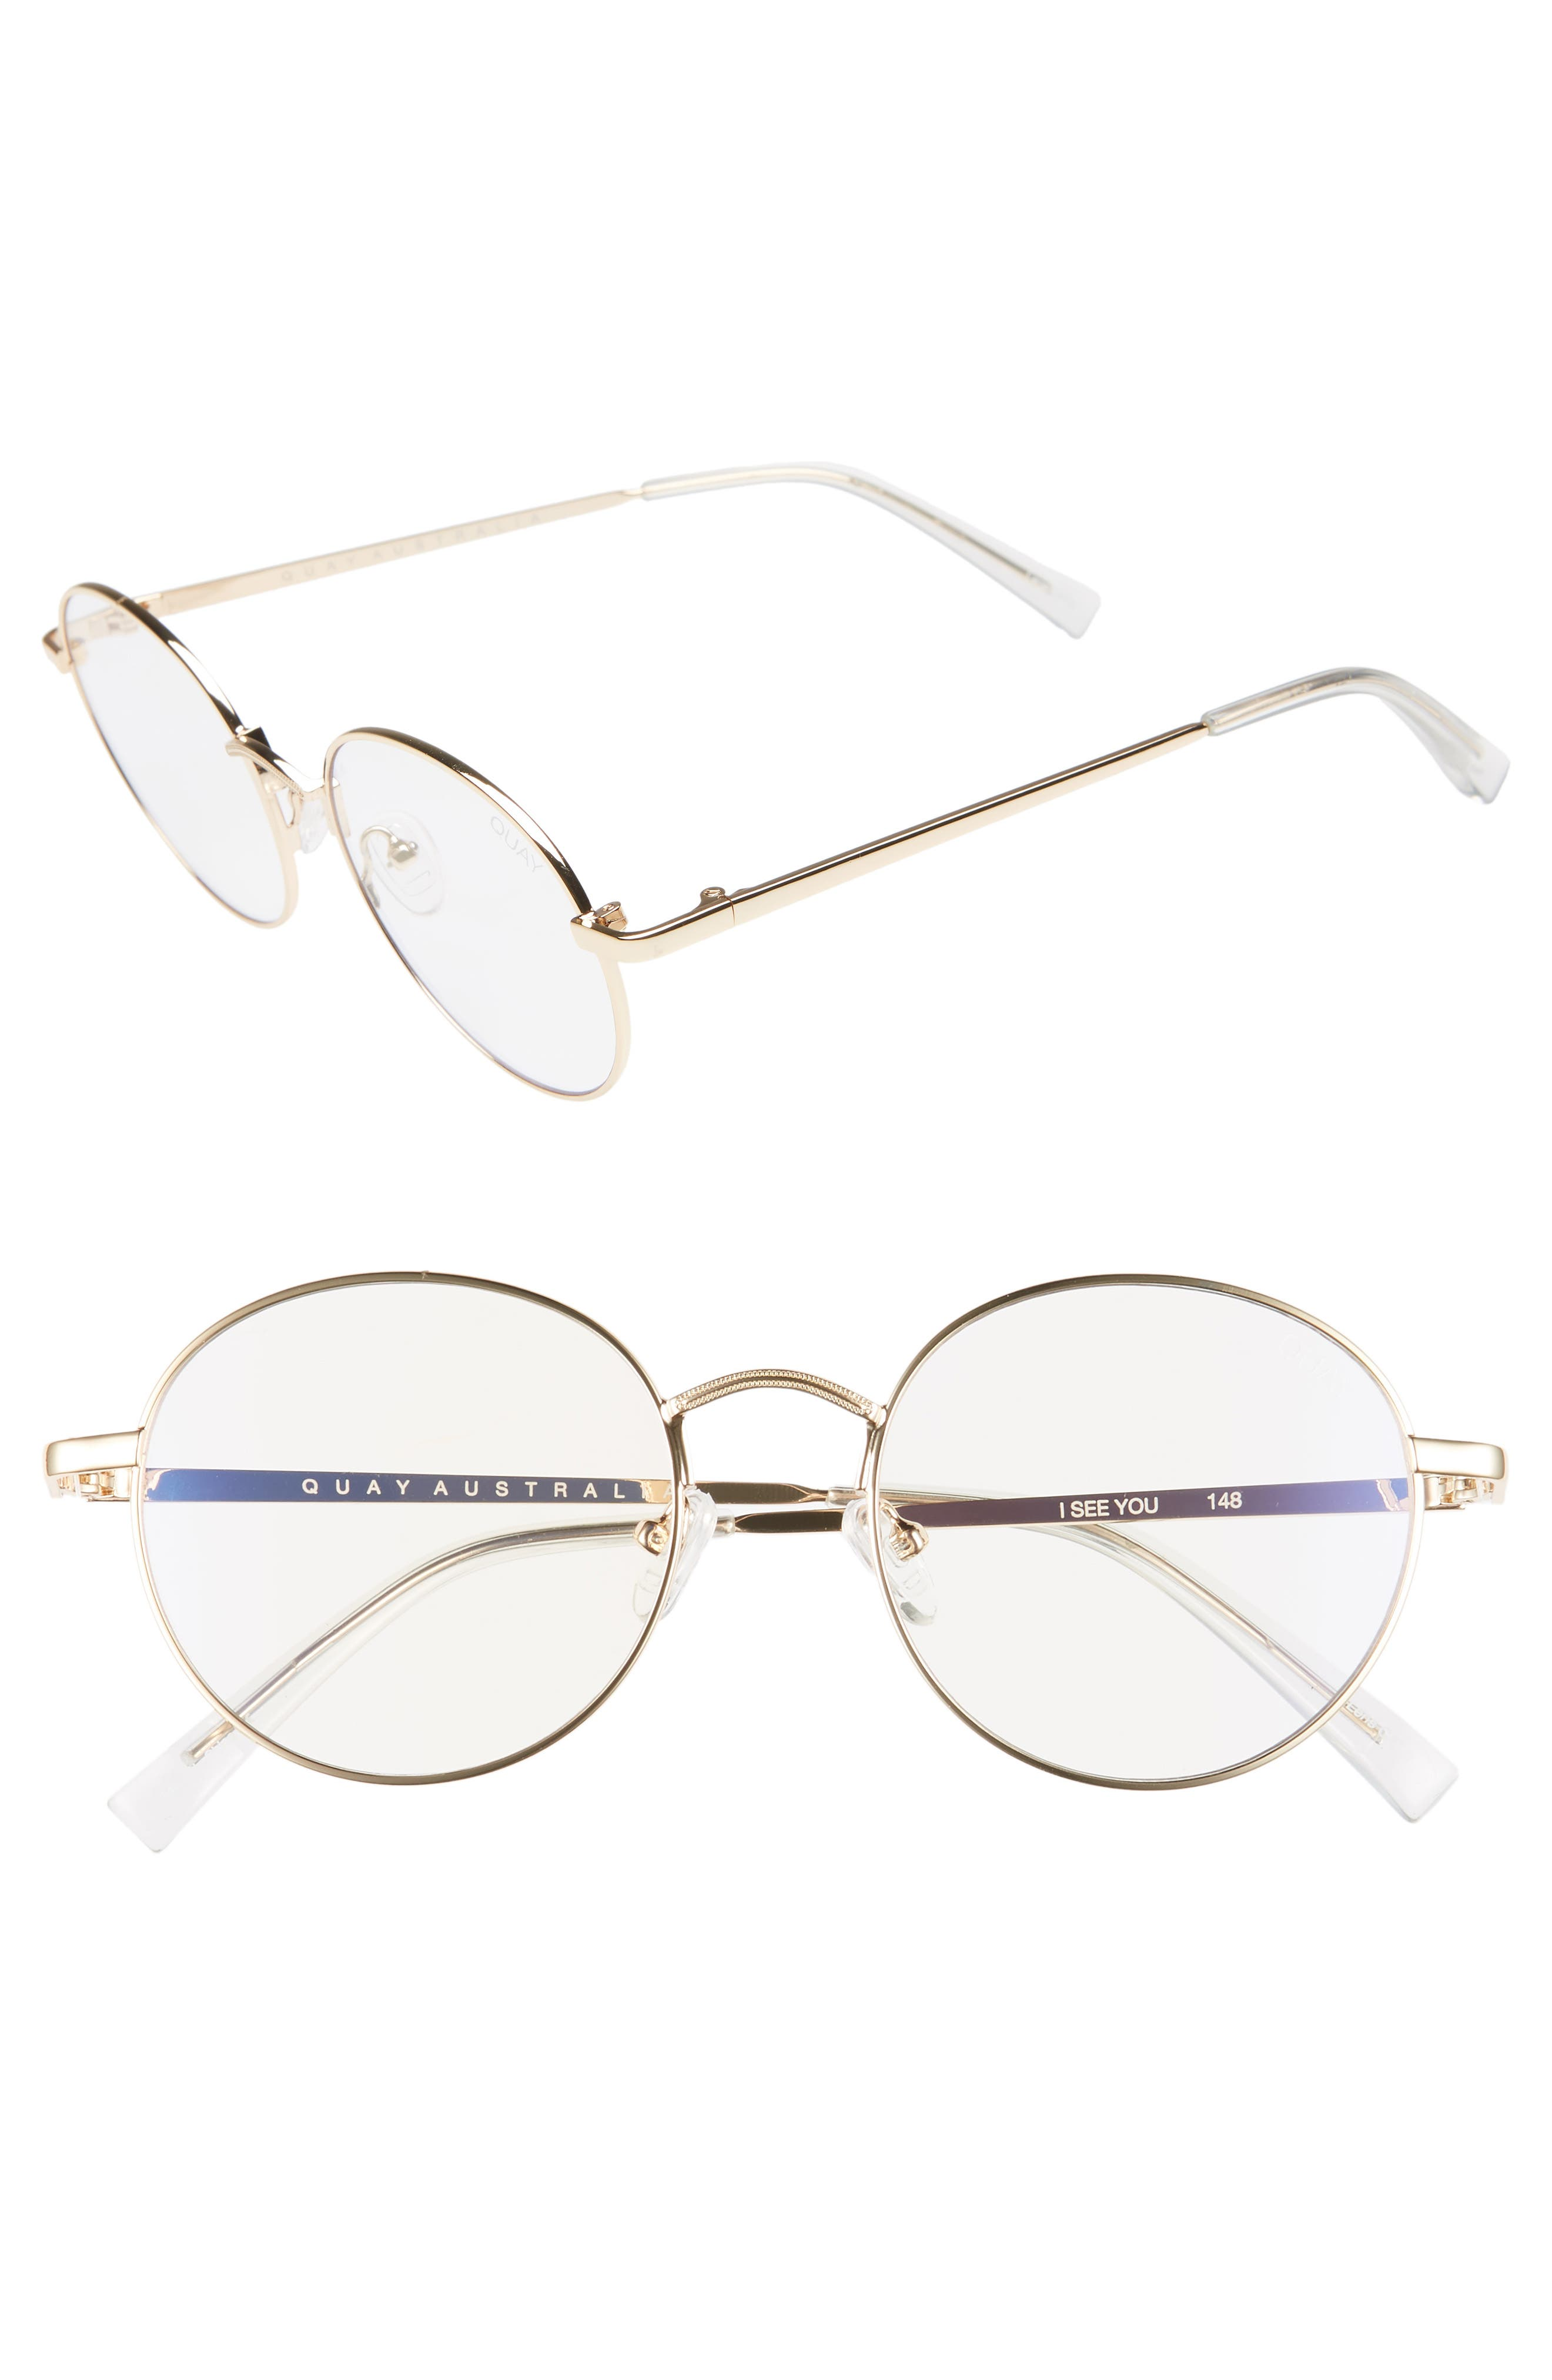 I See You 49mm Round Fashion Glasses,                             Main thumbnail 1, color,                             710